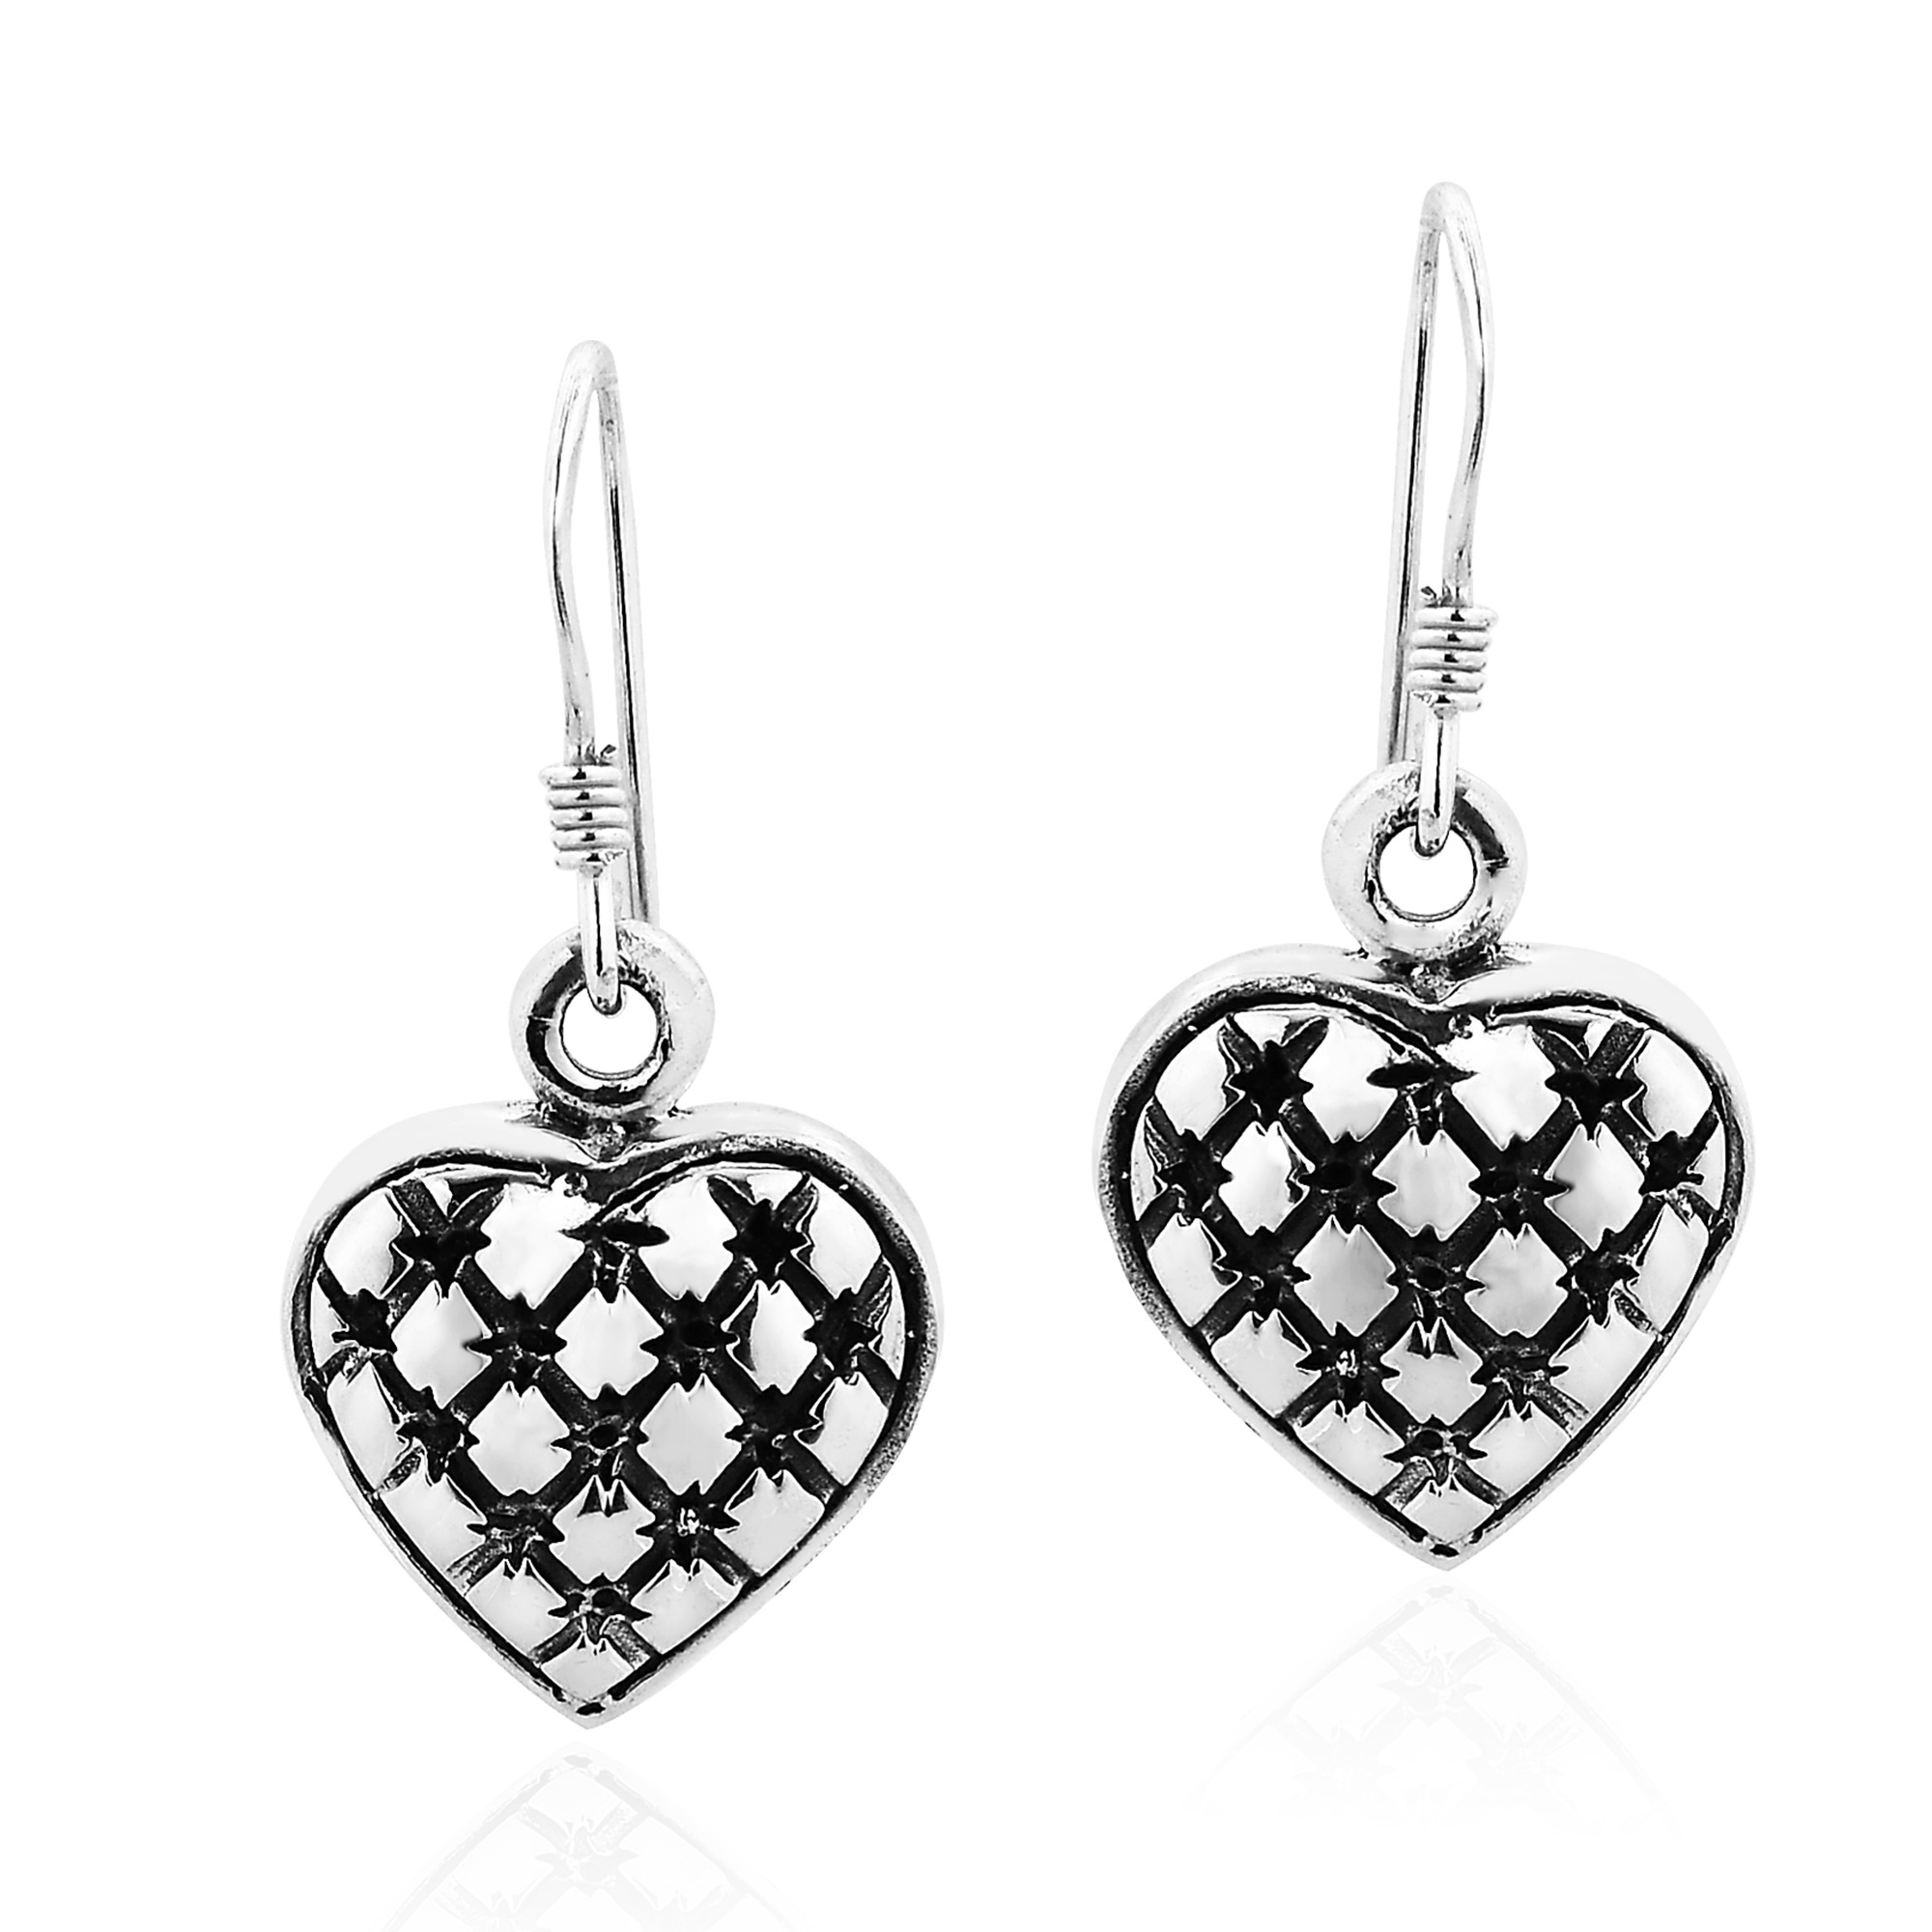 accented pe cute grid heart earrings through feature sterling these the design plain trendy details shaped to a with allows dangle contrasting silver pattern unique finishes come adorable shape products